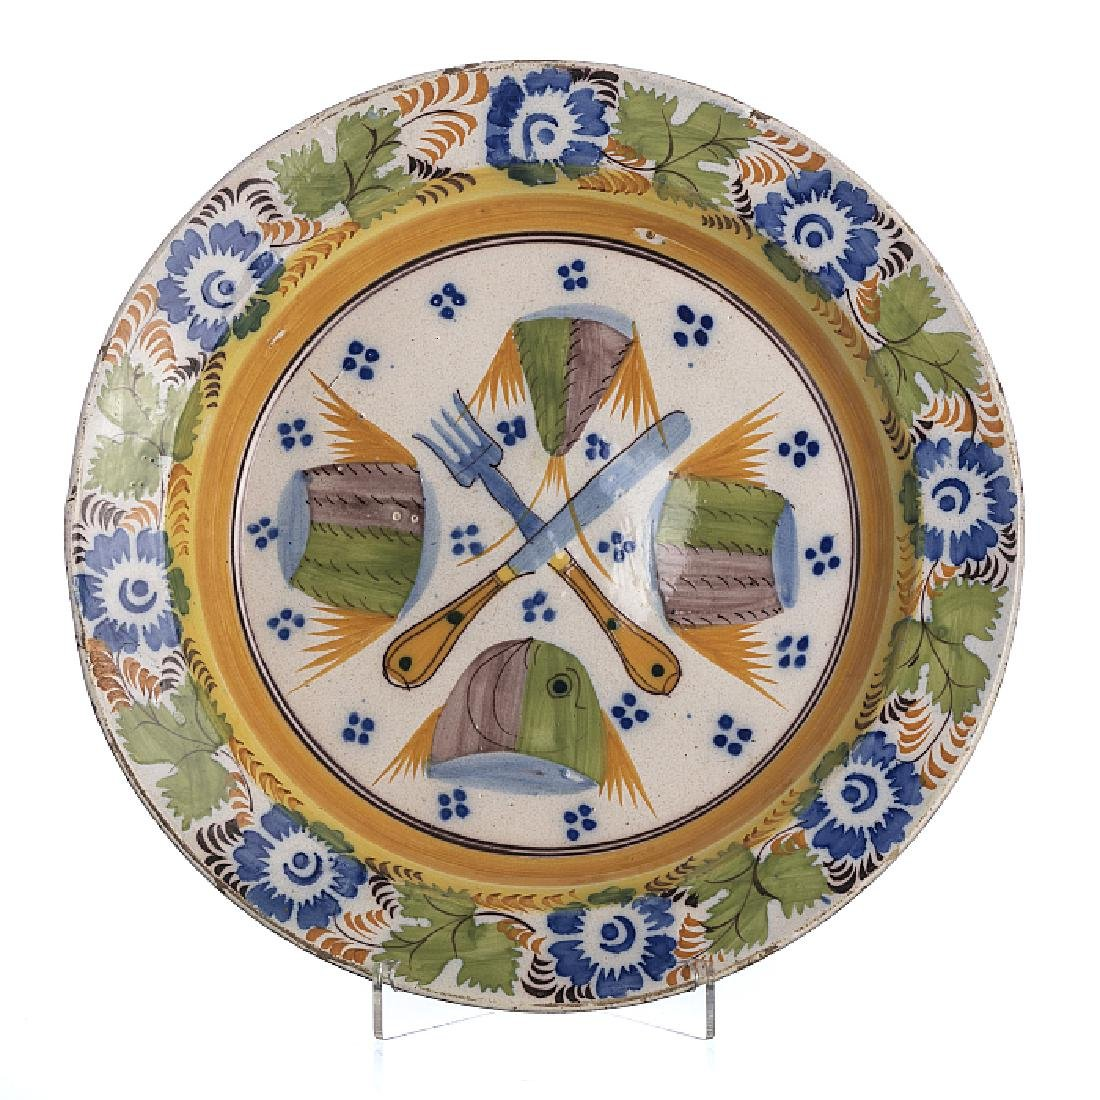 Fork and knife plate in faience